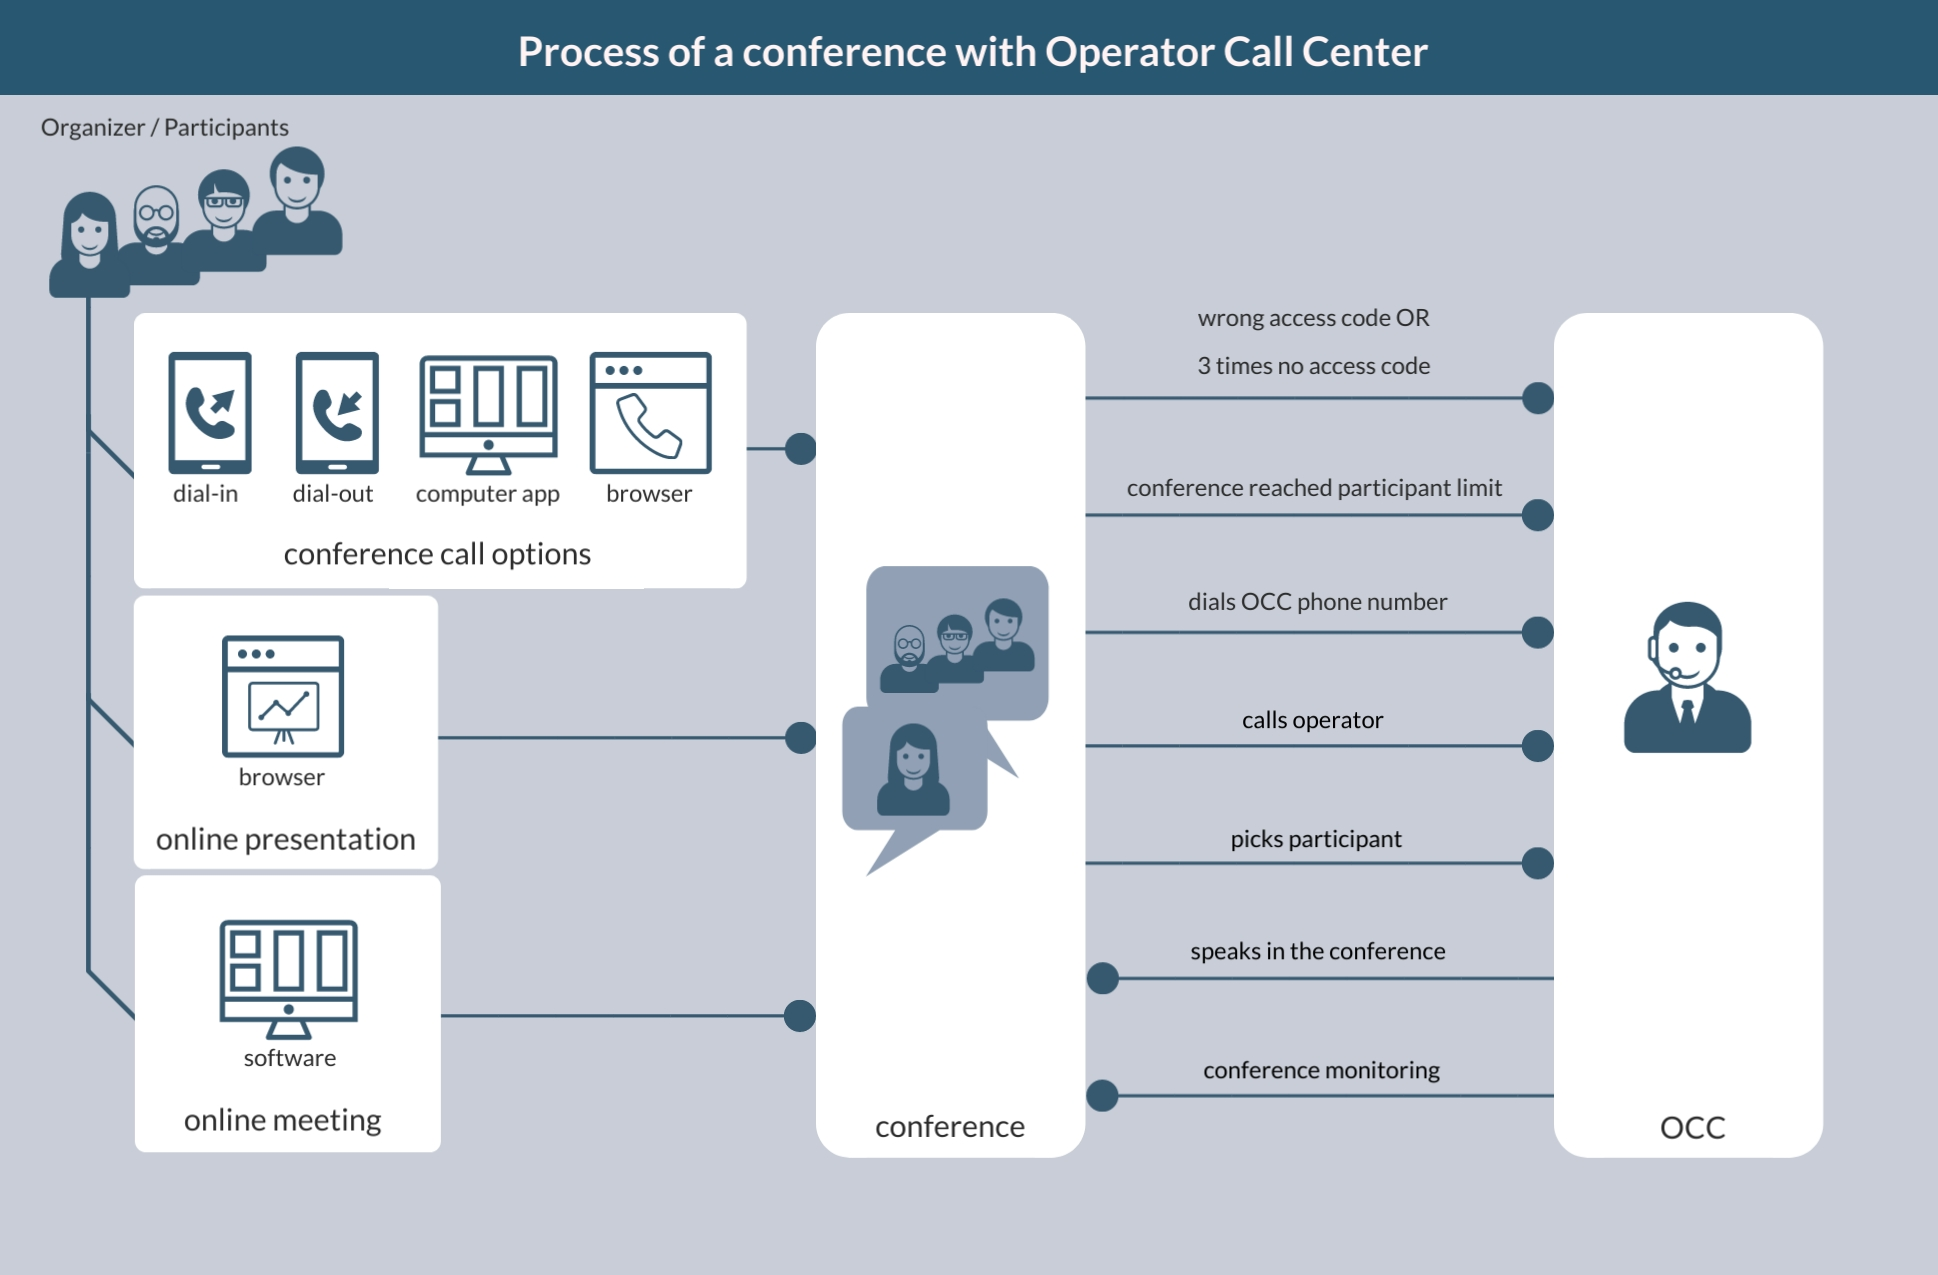 operator call center process